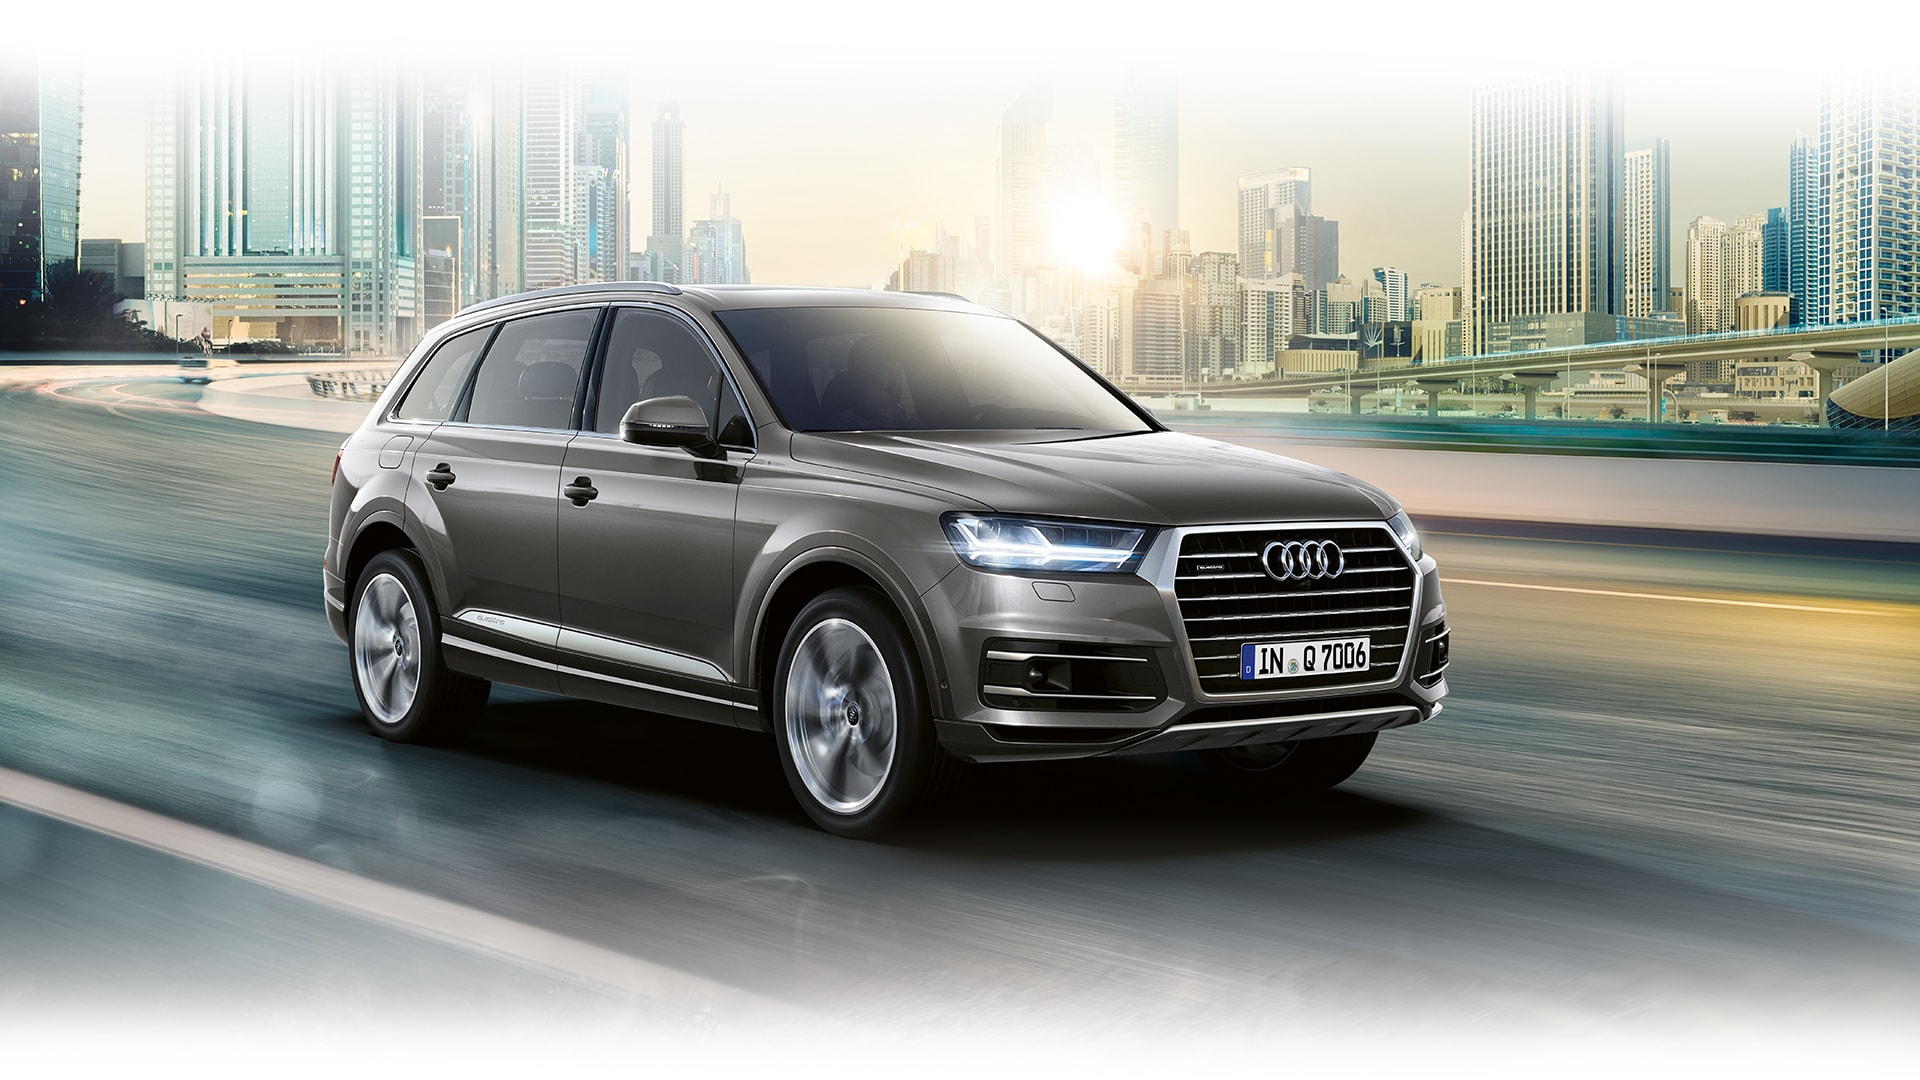 Consumer Reports Recommended products | CRwatchdog on audi usa, audi coupe, audi r8, audi q5, audi a5, audi a7, audi truck, audi a3, audi automobiles, audi s8, audi rsq, audi s5, audi q3, audi tt, audi convertible, audi s3, audi a4, audi m3, audi 4 door, audi rs6,